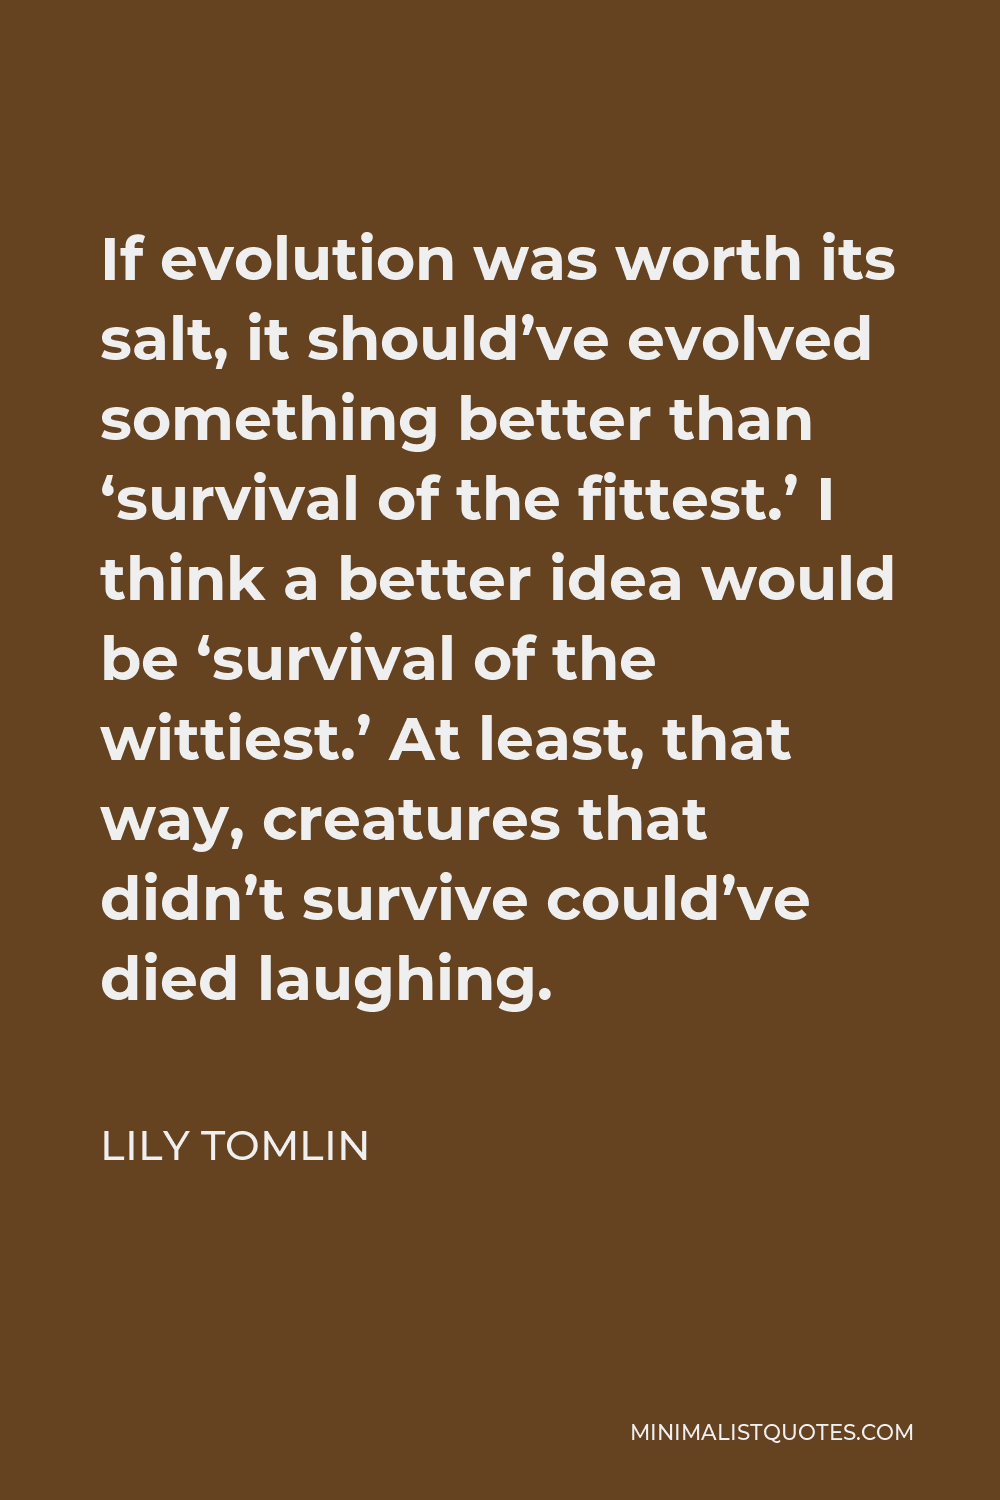 Lily Tomlin Quote - If evolution was worth its salt, it should've evolved something better than 'survival of the fittest.' I think a better idea would be 'survival of the wittiest.' At least, that way, creatures that didn't survive could've died laughing.